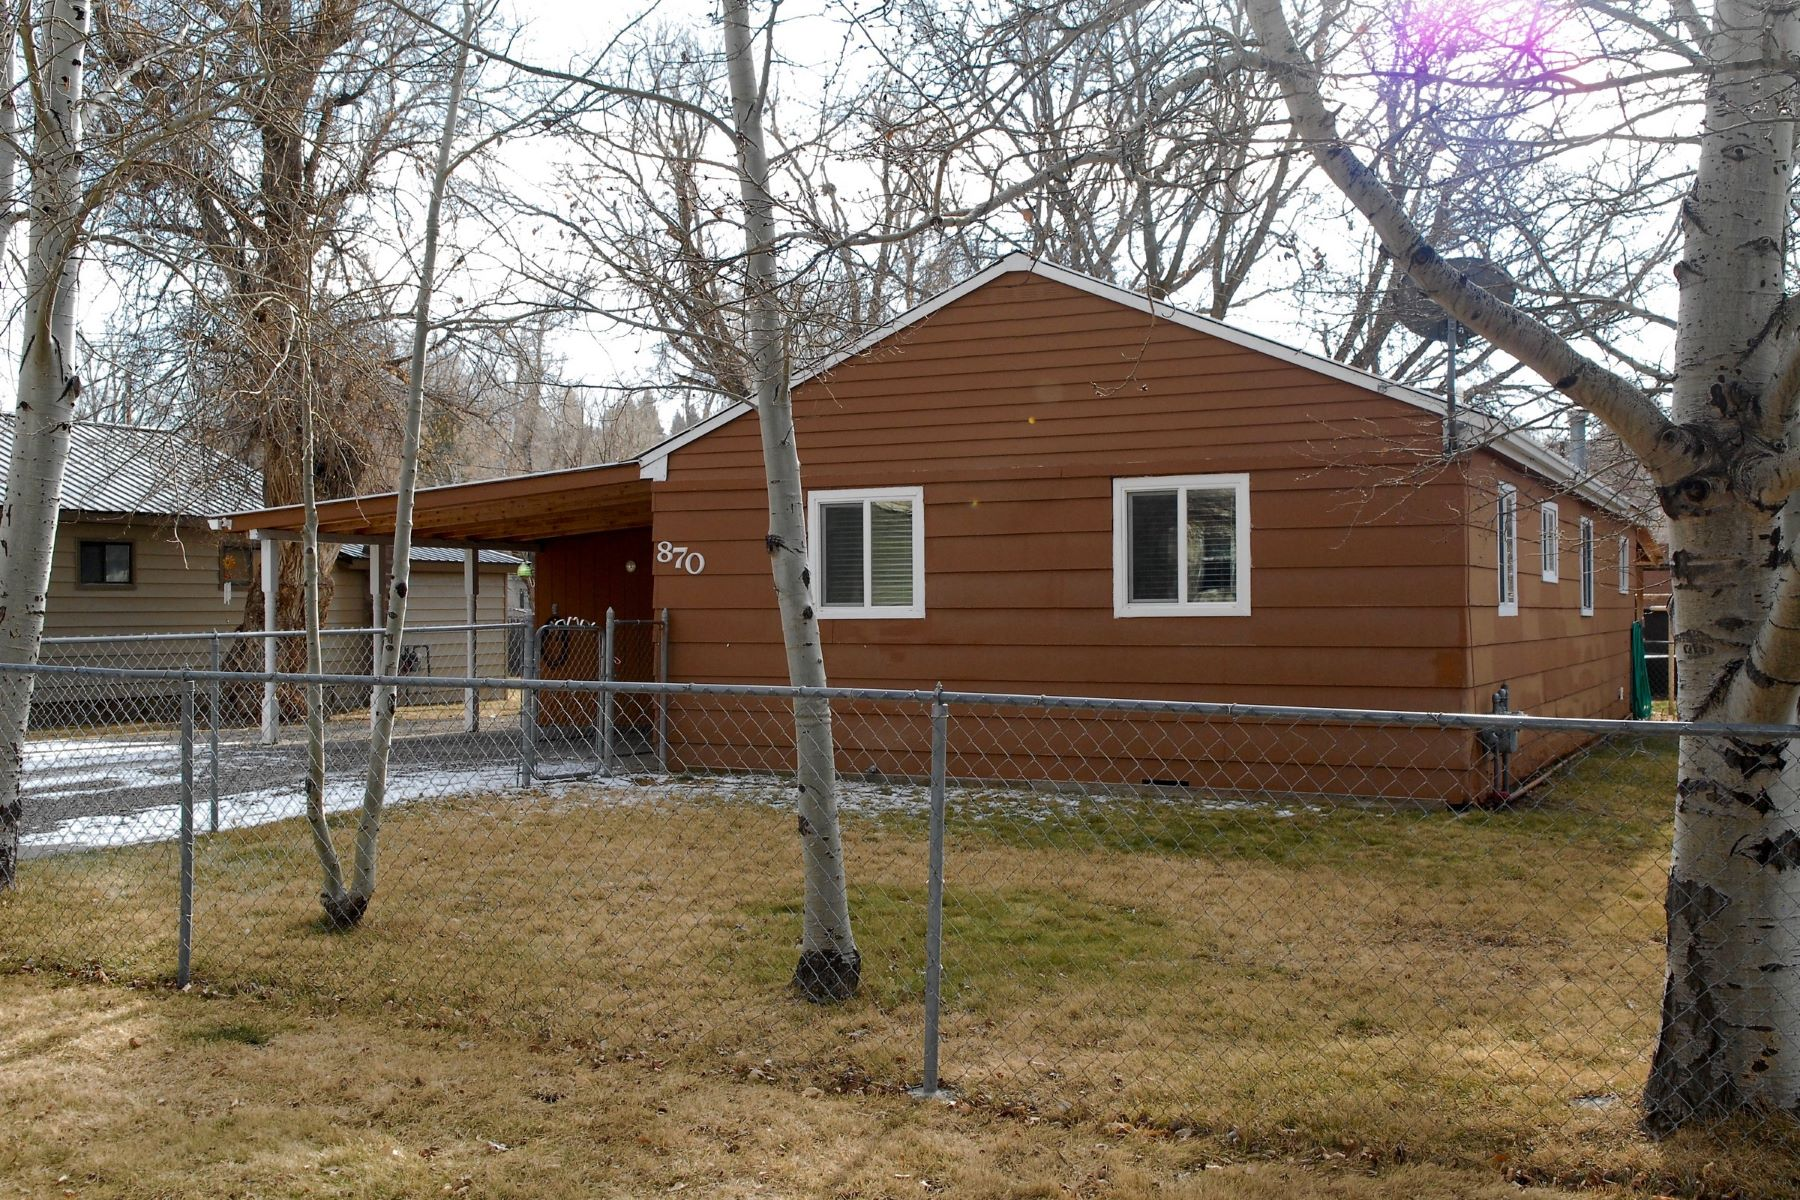 Single Family Home for Sale at Easy Living in Meeker 870 Water Street Meeker, Colorado 81641 United States